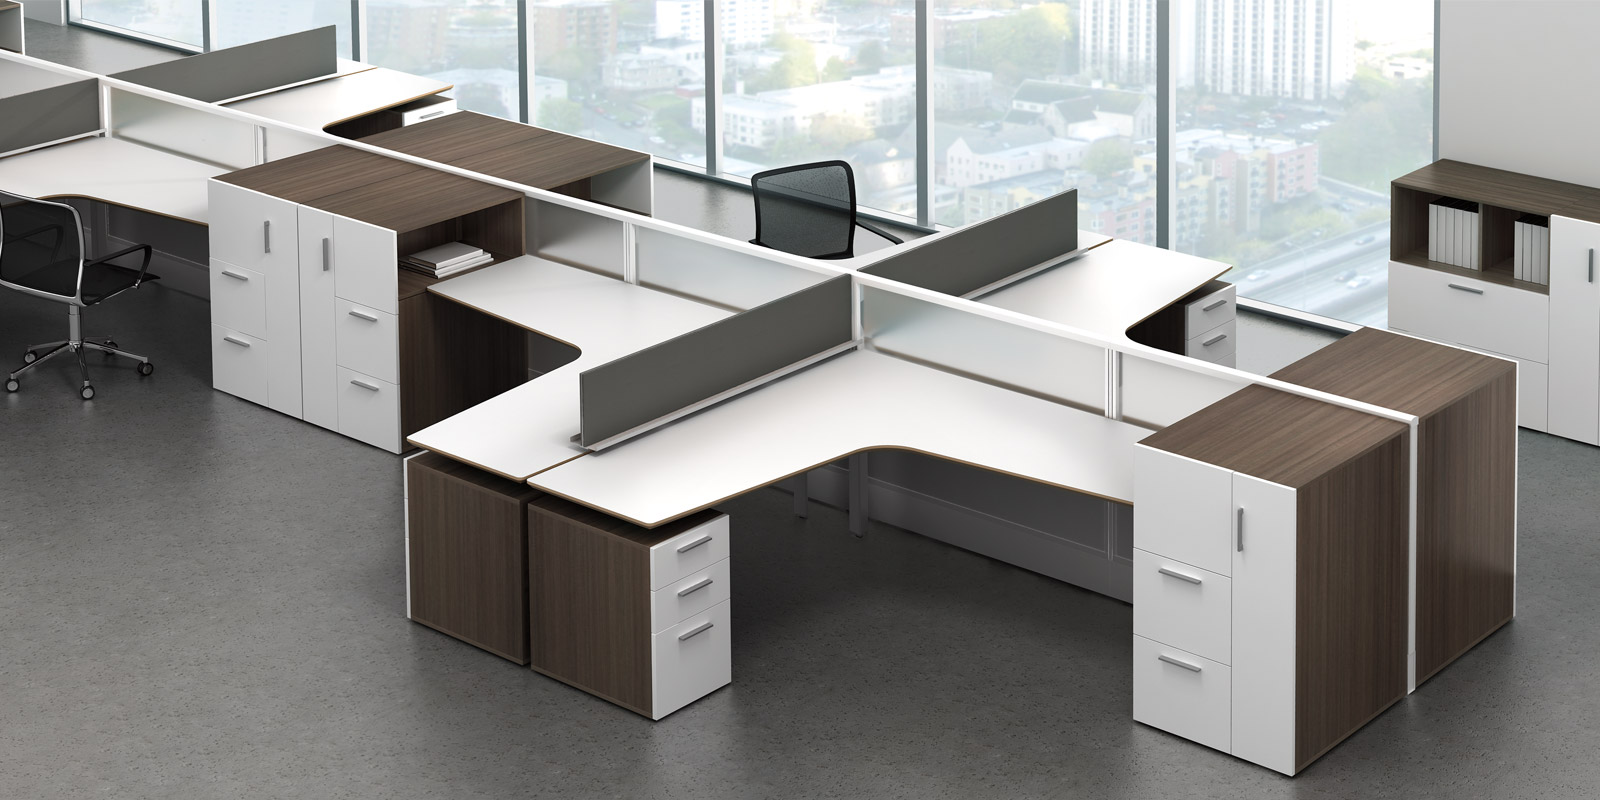 modular office furniture m2 open office plans by